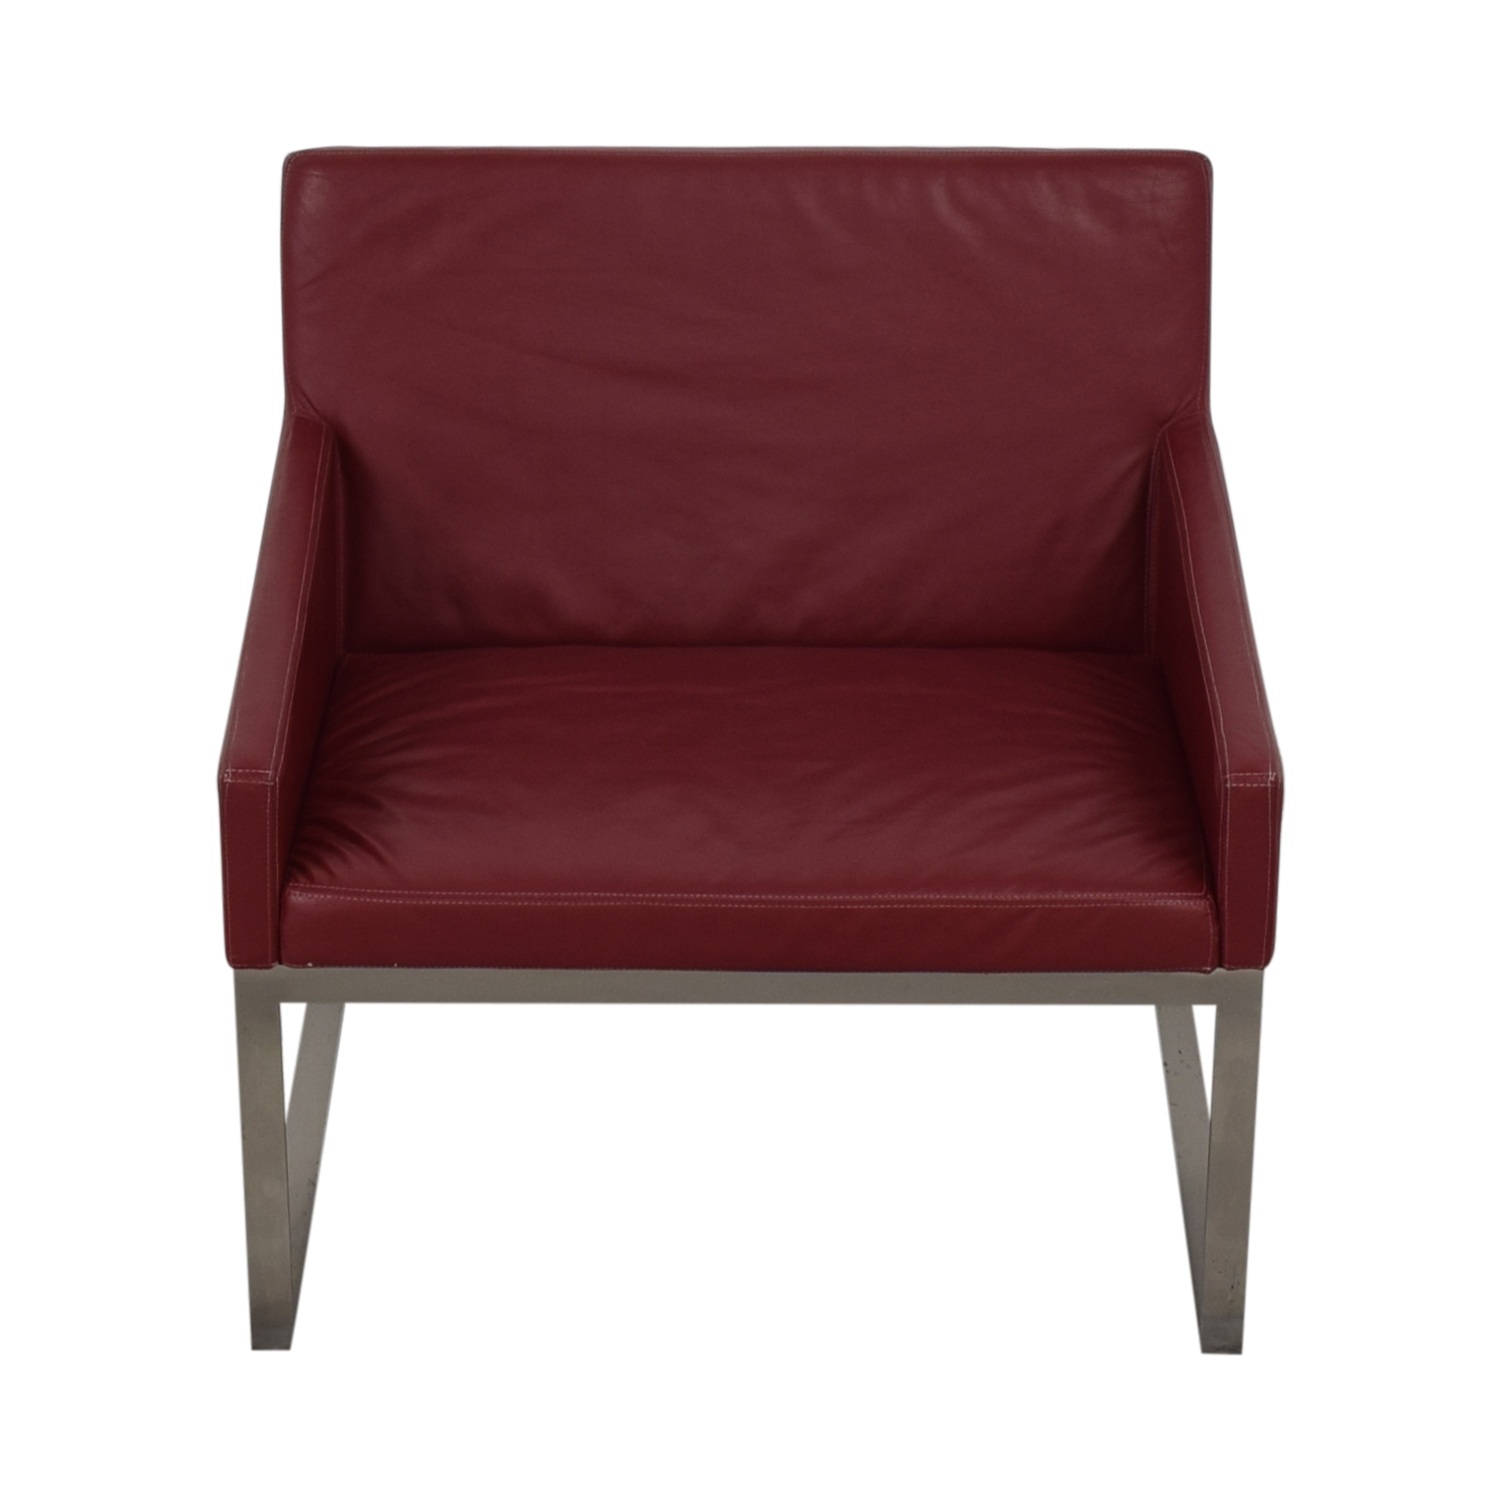 buy Bernhardt B.3 Lounge Chair Bernhardt Chairs